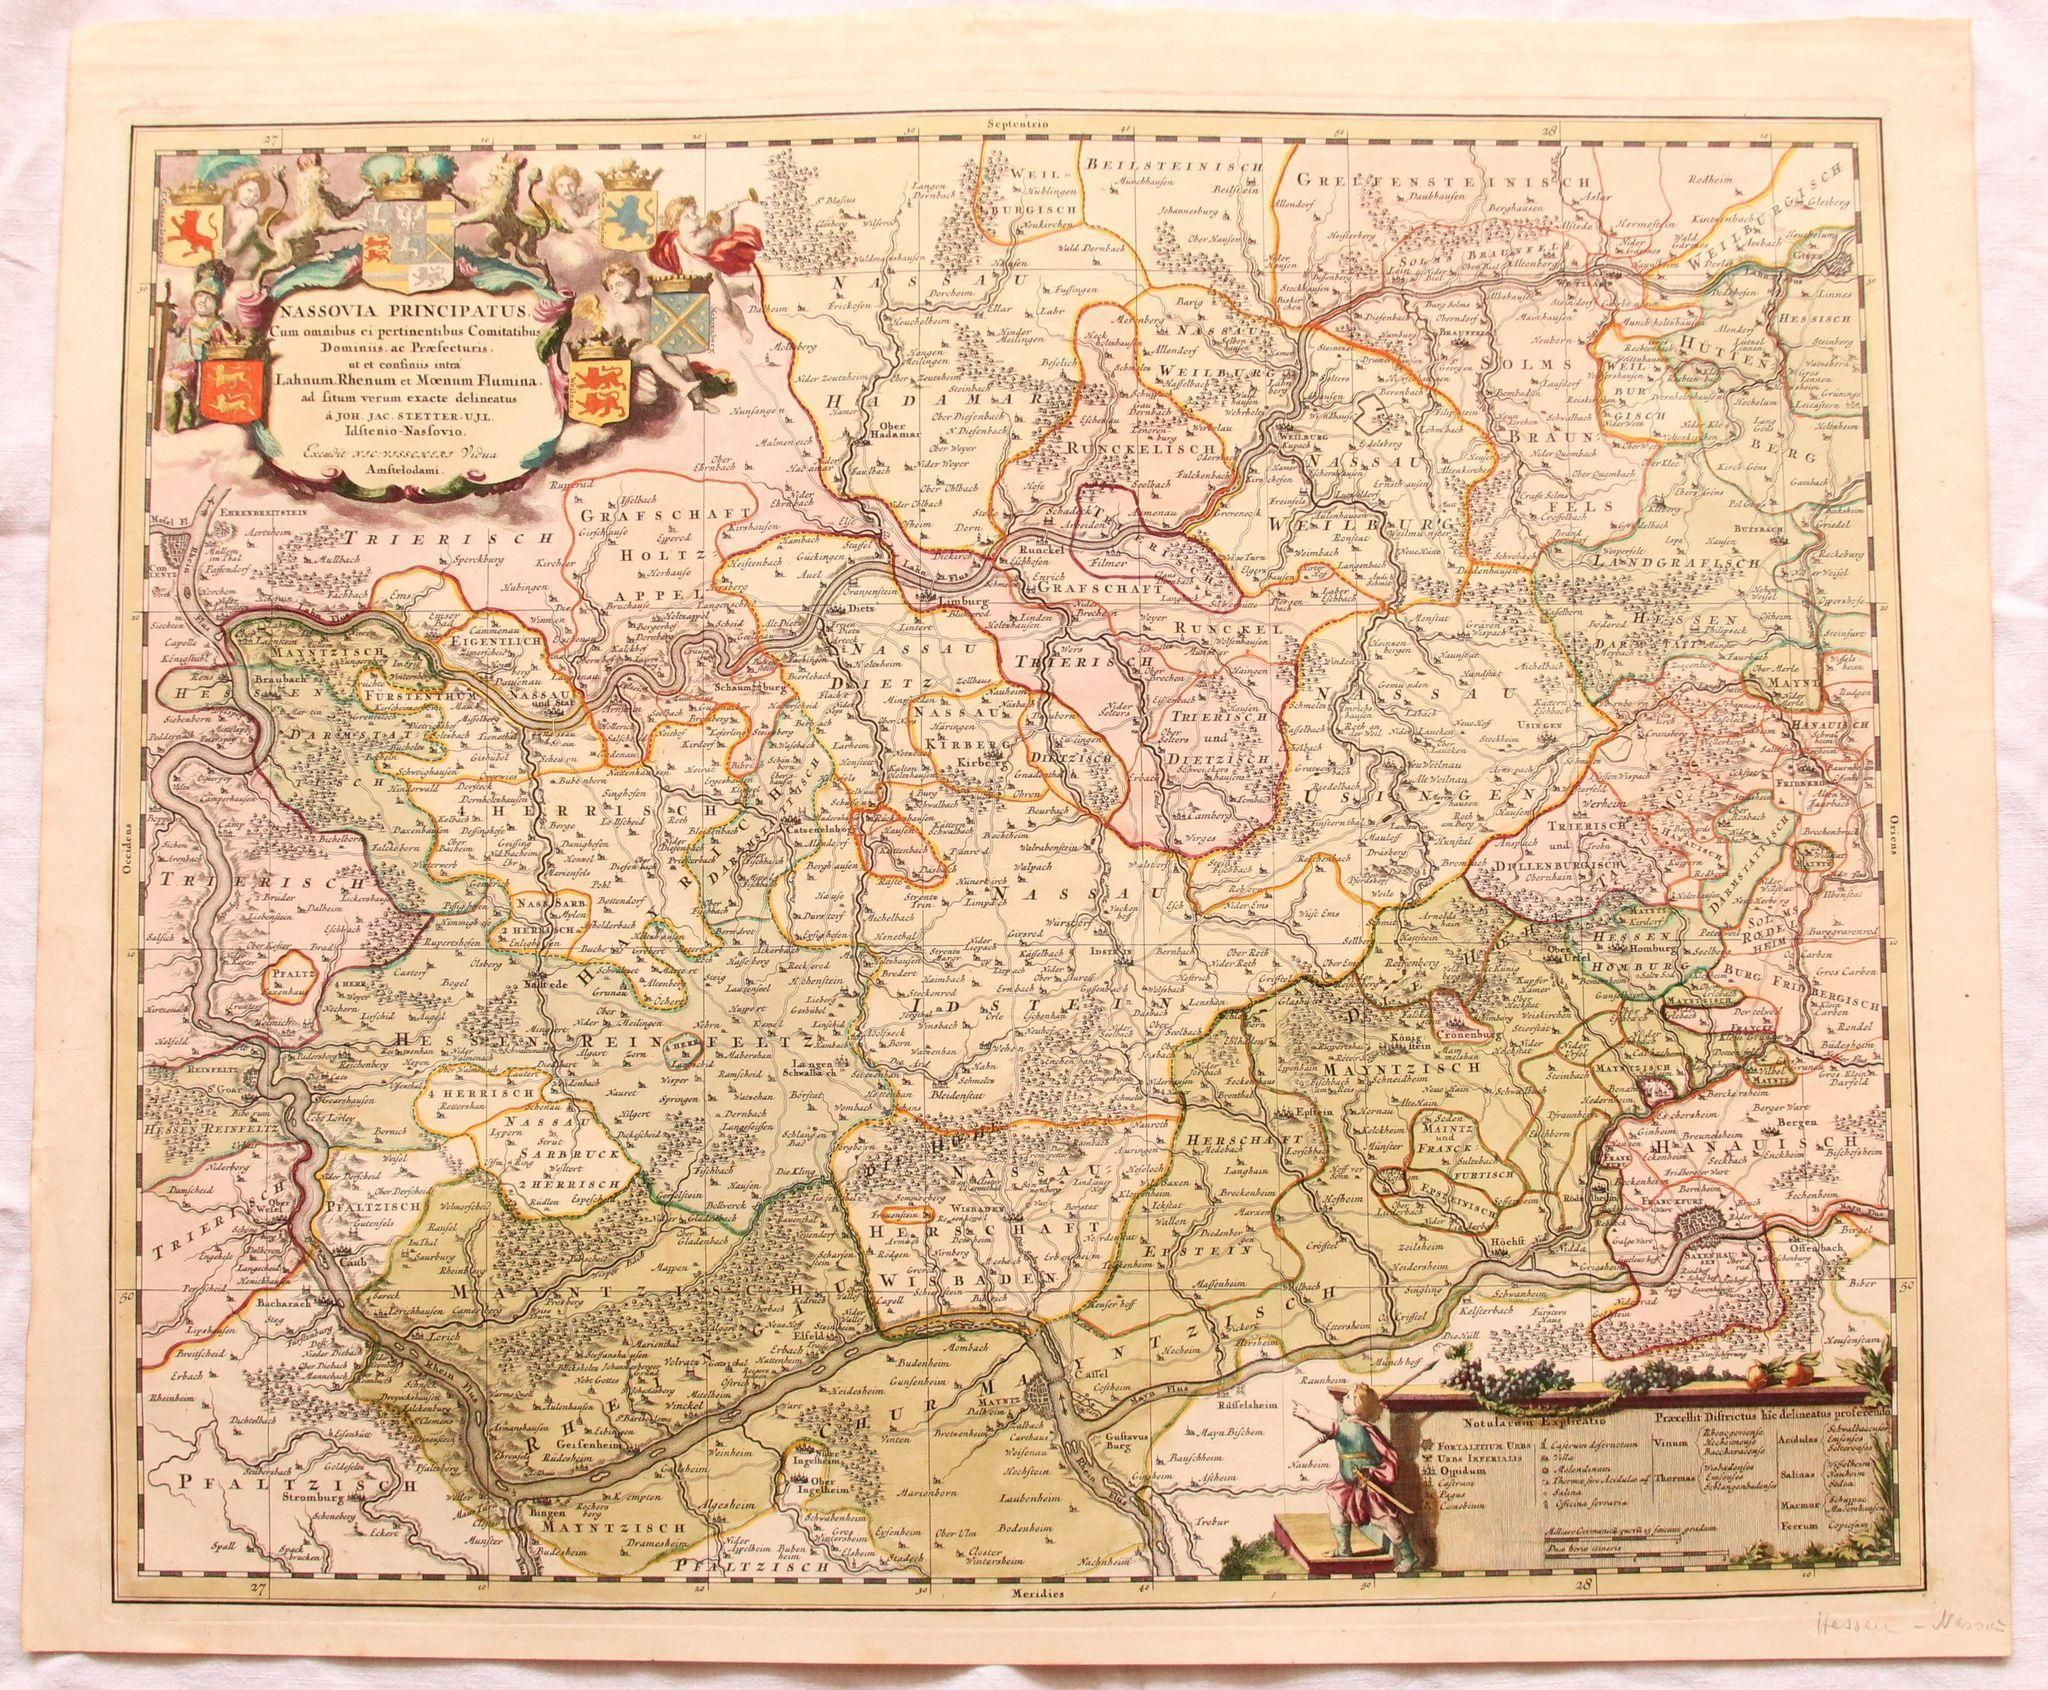 17th Century Map of the Province of Nassau including Mainz Koblenz